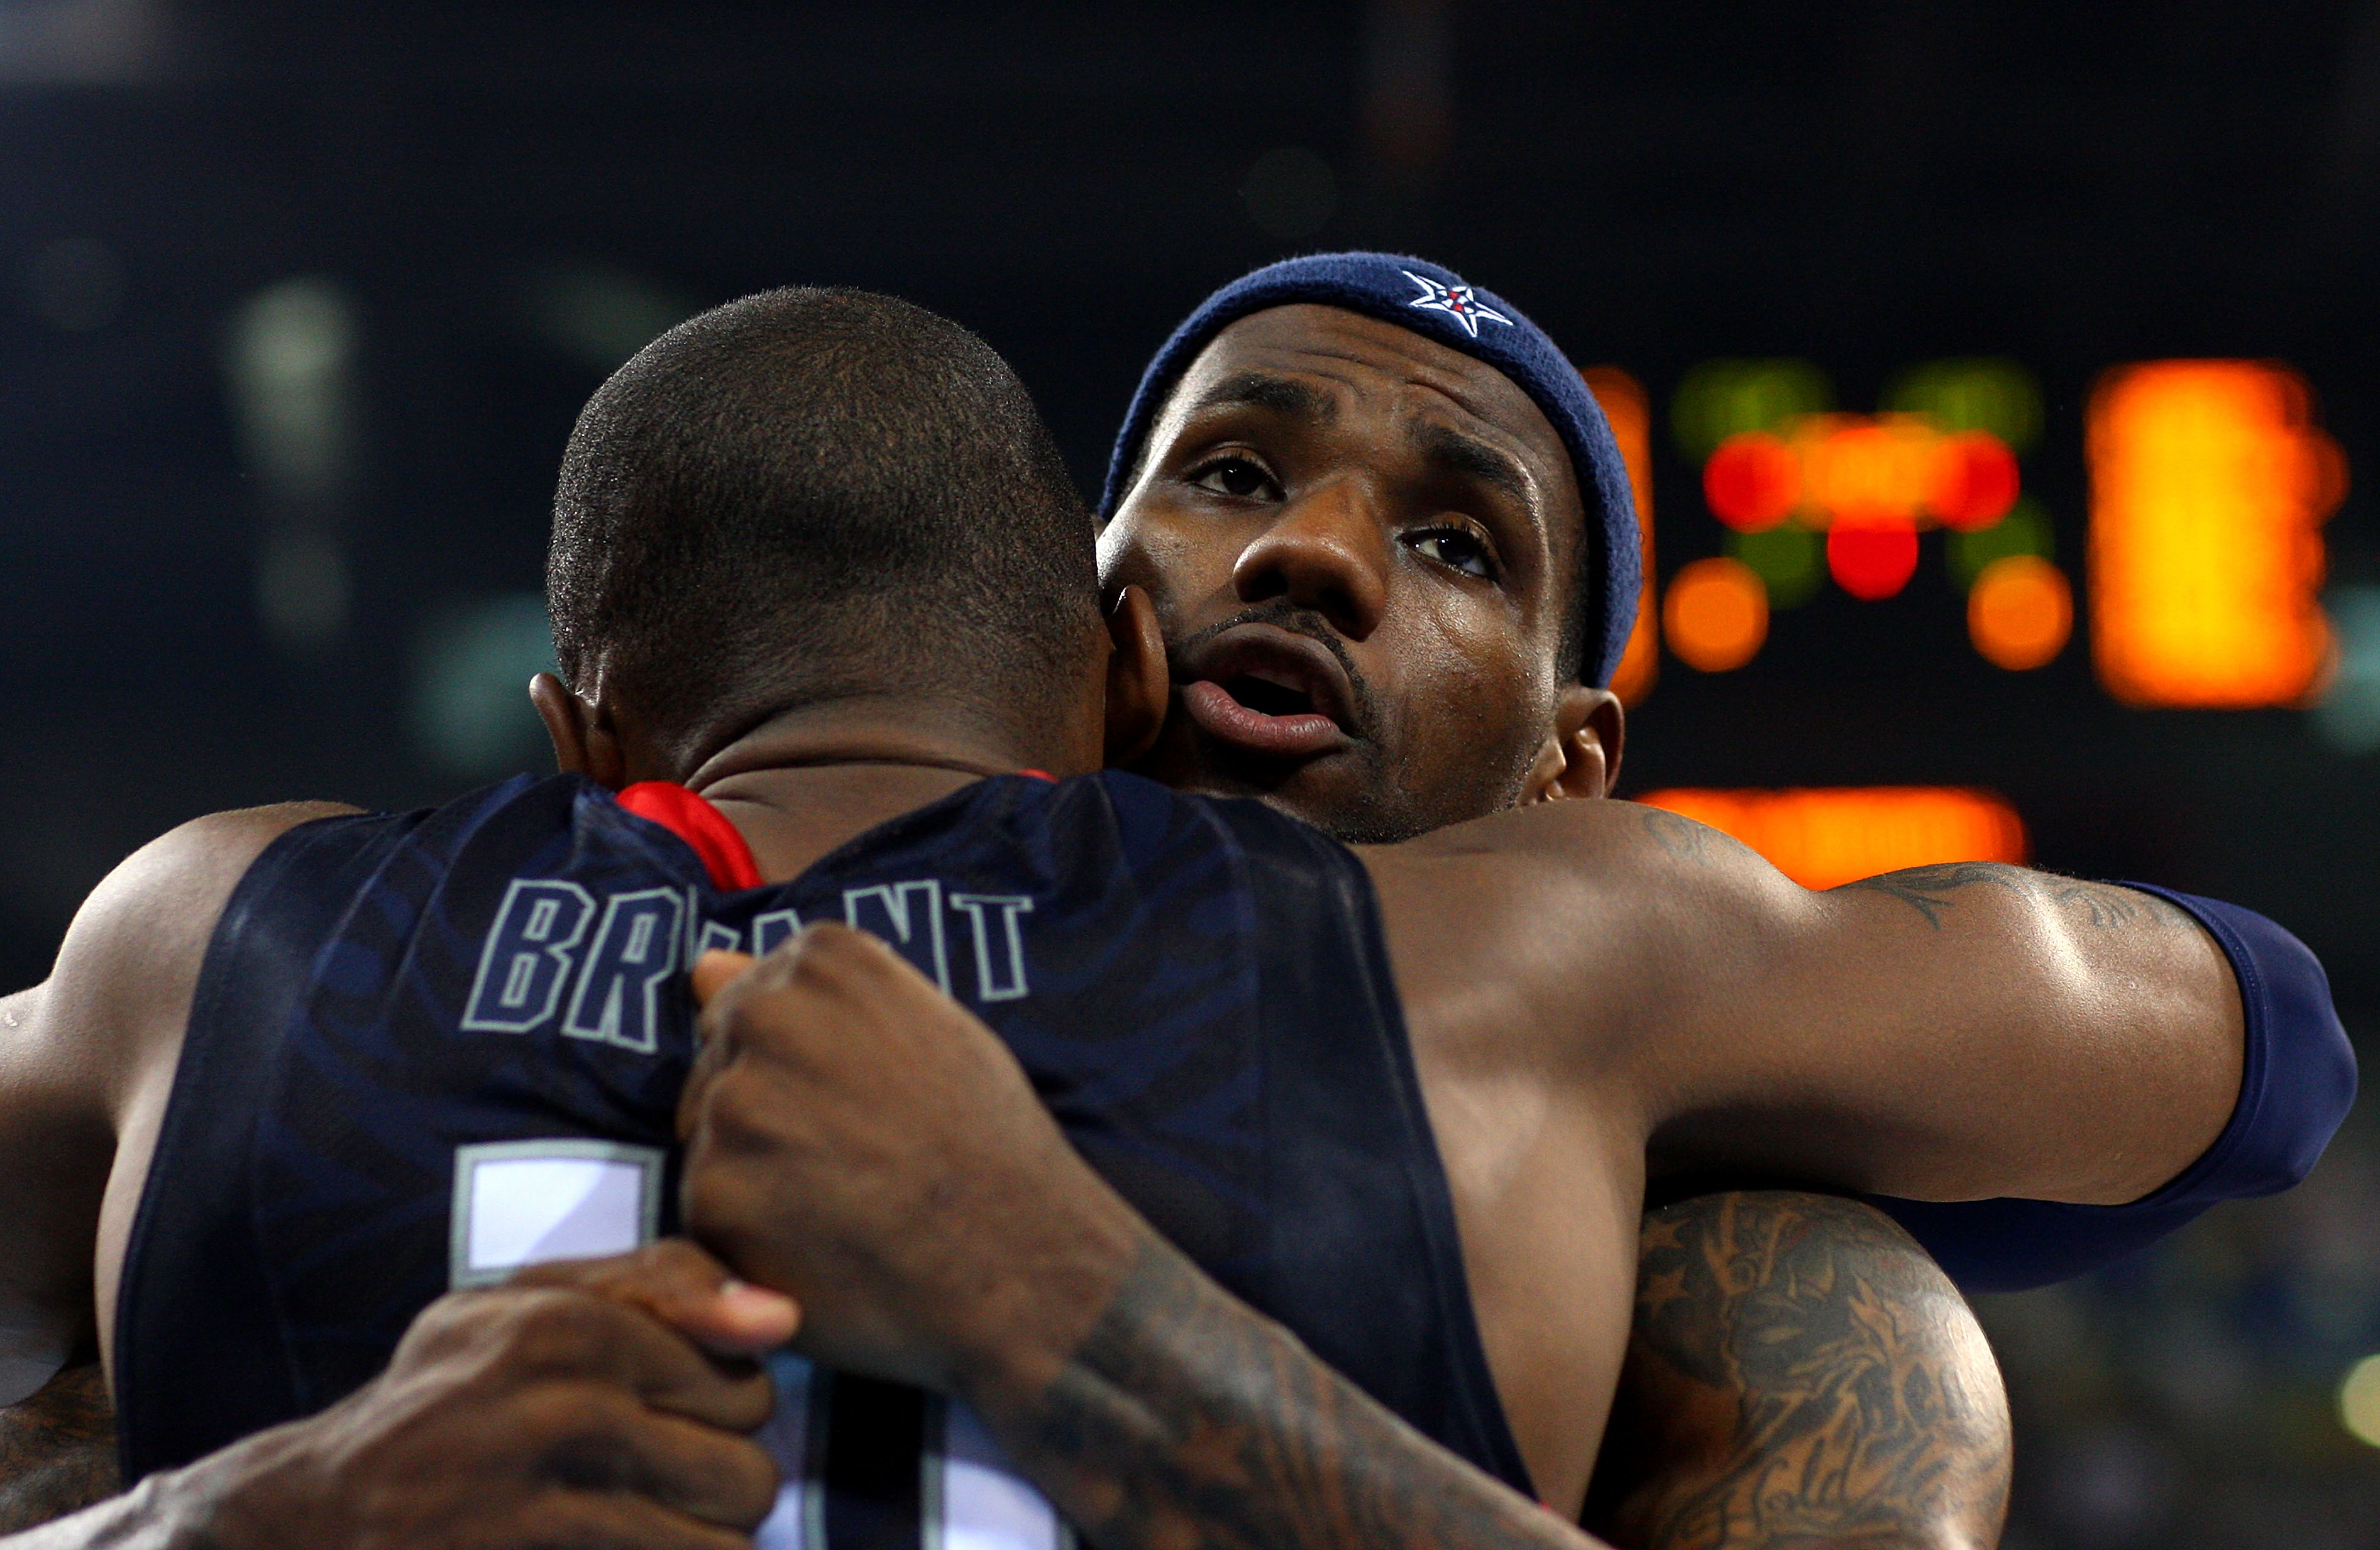 BEIJING - AUGUST 24:  LeBron James #6 and Kobe Bryant #10 of the United States embrace before the gold medal game against Spain during Day 16 of the Beijing 2008 Olympic Games at the Beijing Olympic Basketball Gymnasium on August 24, 2008 in Beijing, Chin